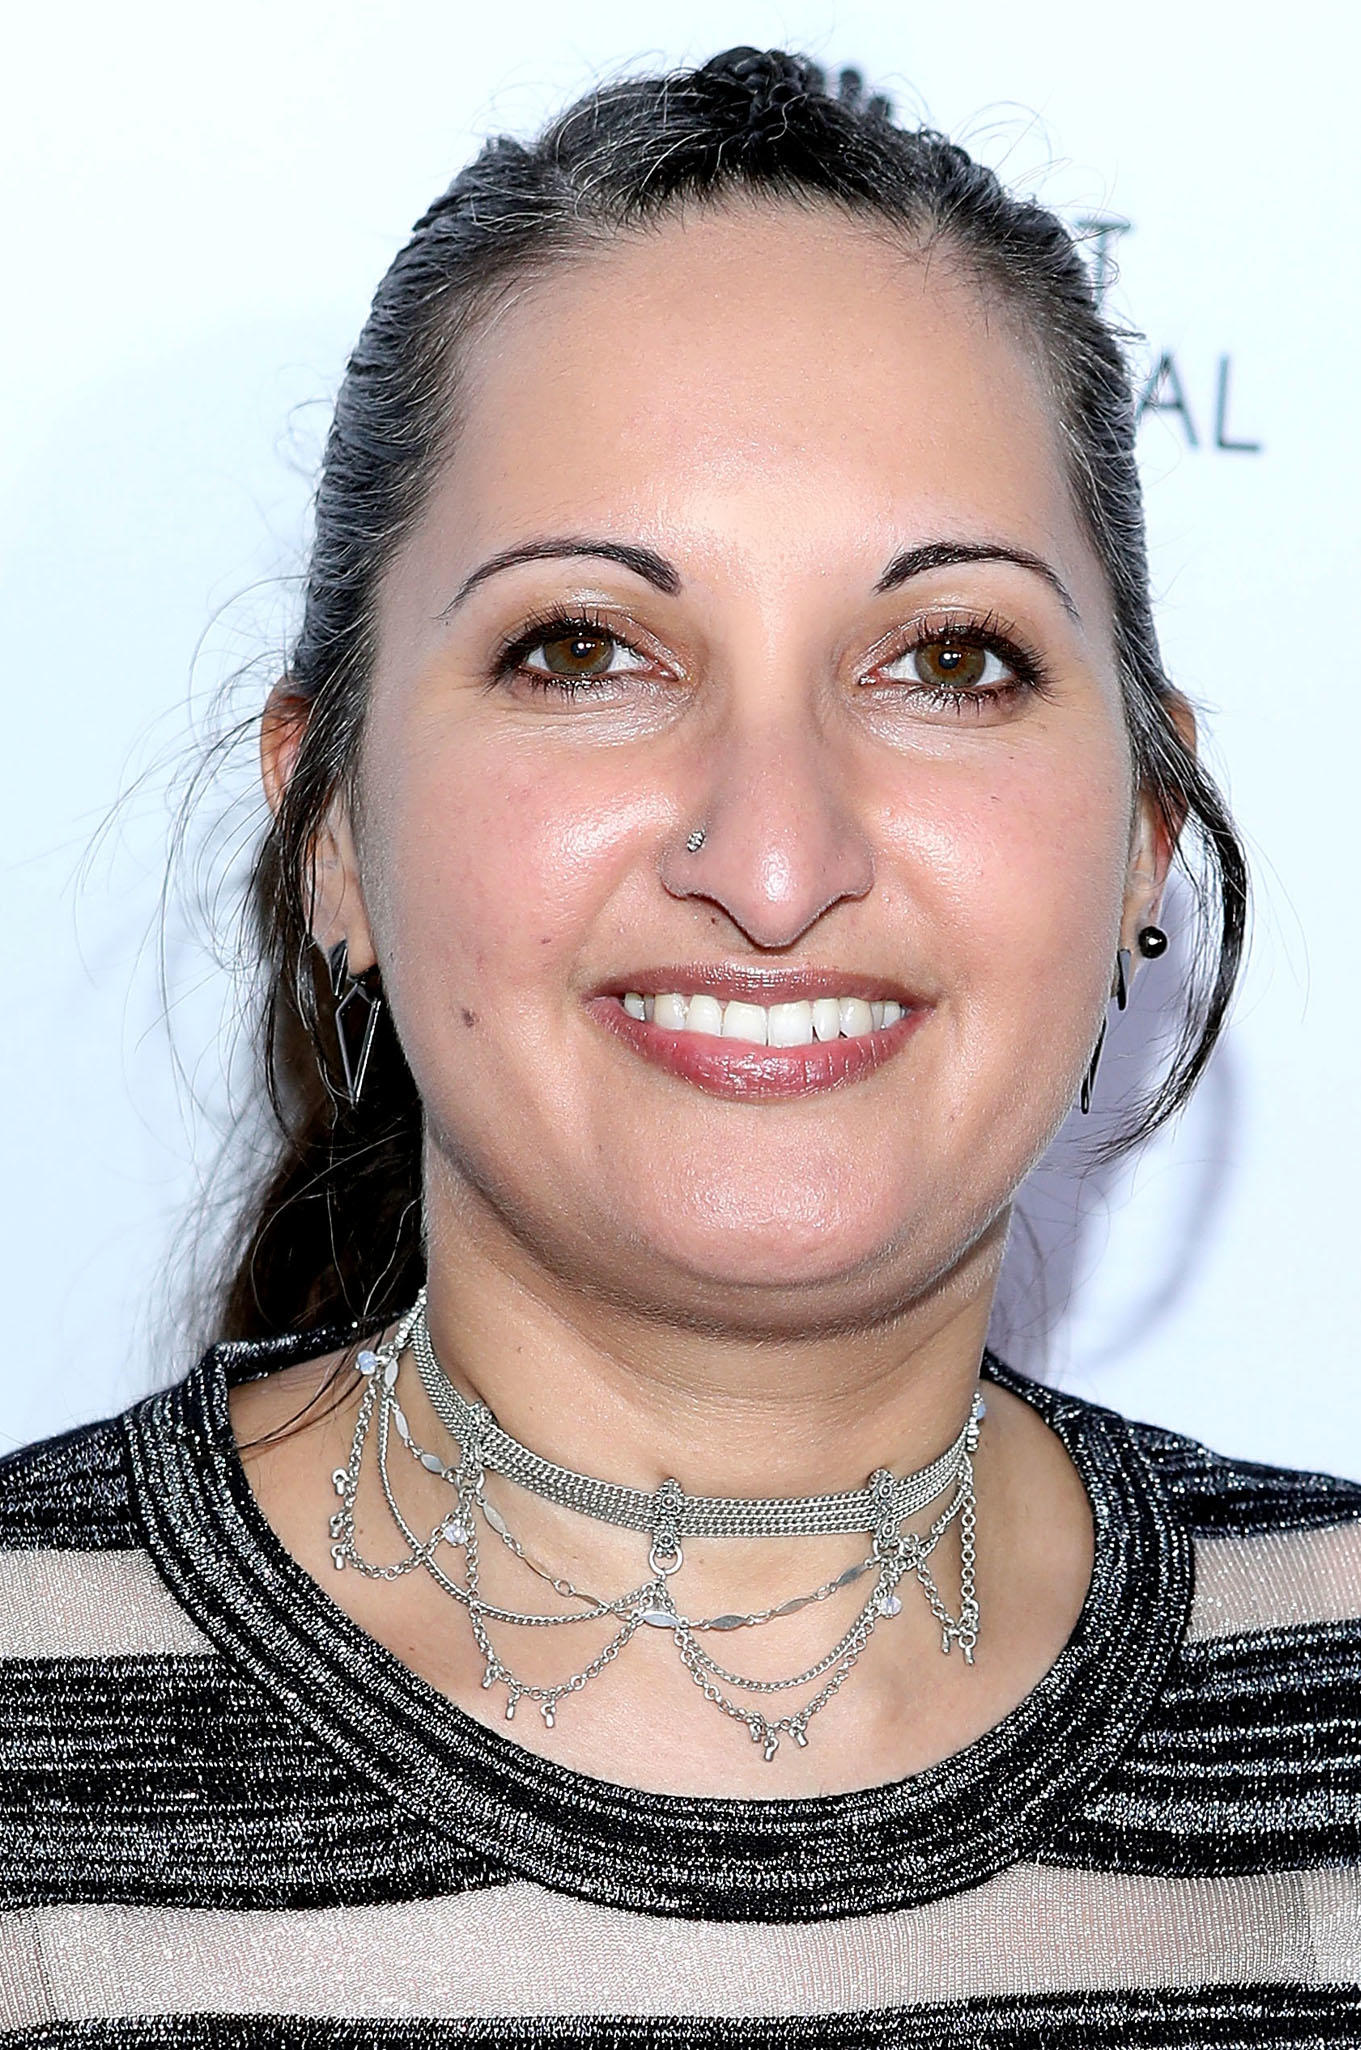 Lucy Mukerjee-Brown at the Outfest Fusion LGBT People of Color Film Festival in Los Angeles.